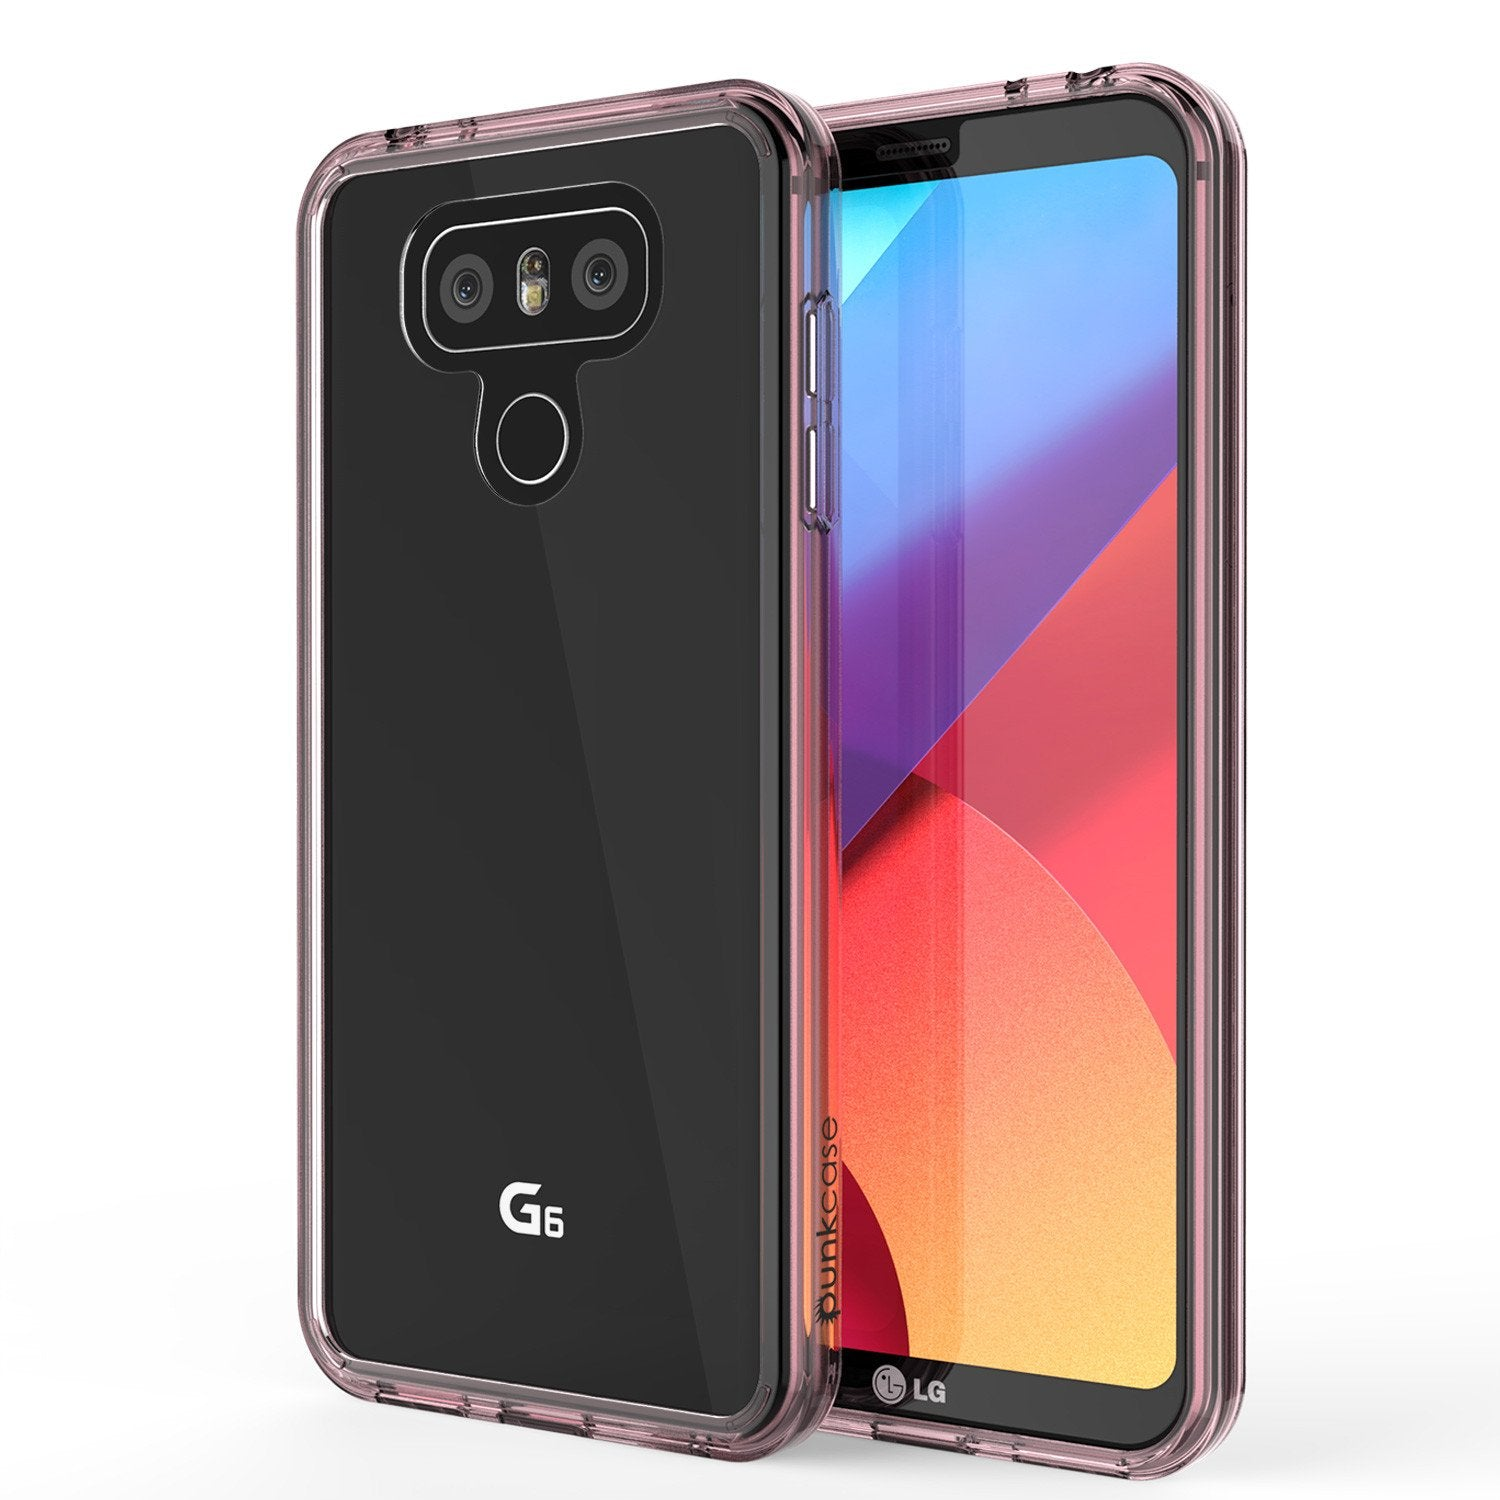 LG G6 Case Punkcase® LUCID 2.0 Crystal Pink Series w/ PUNK SHIELD Screen Protector | Ultra Fit